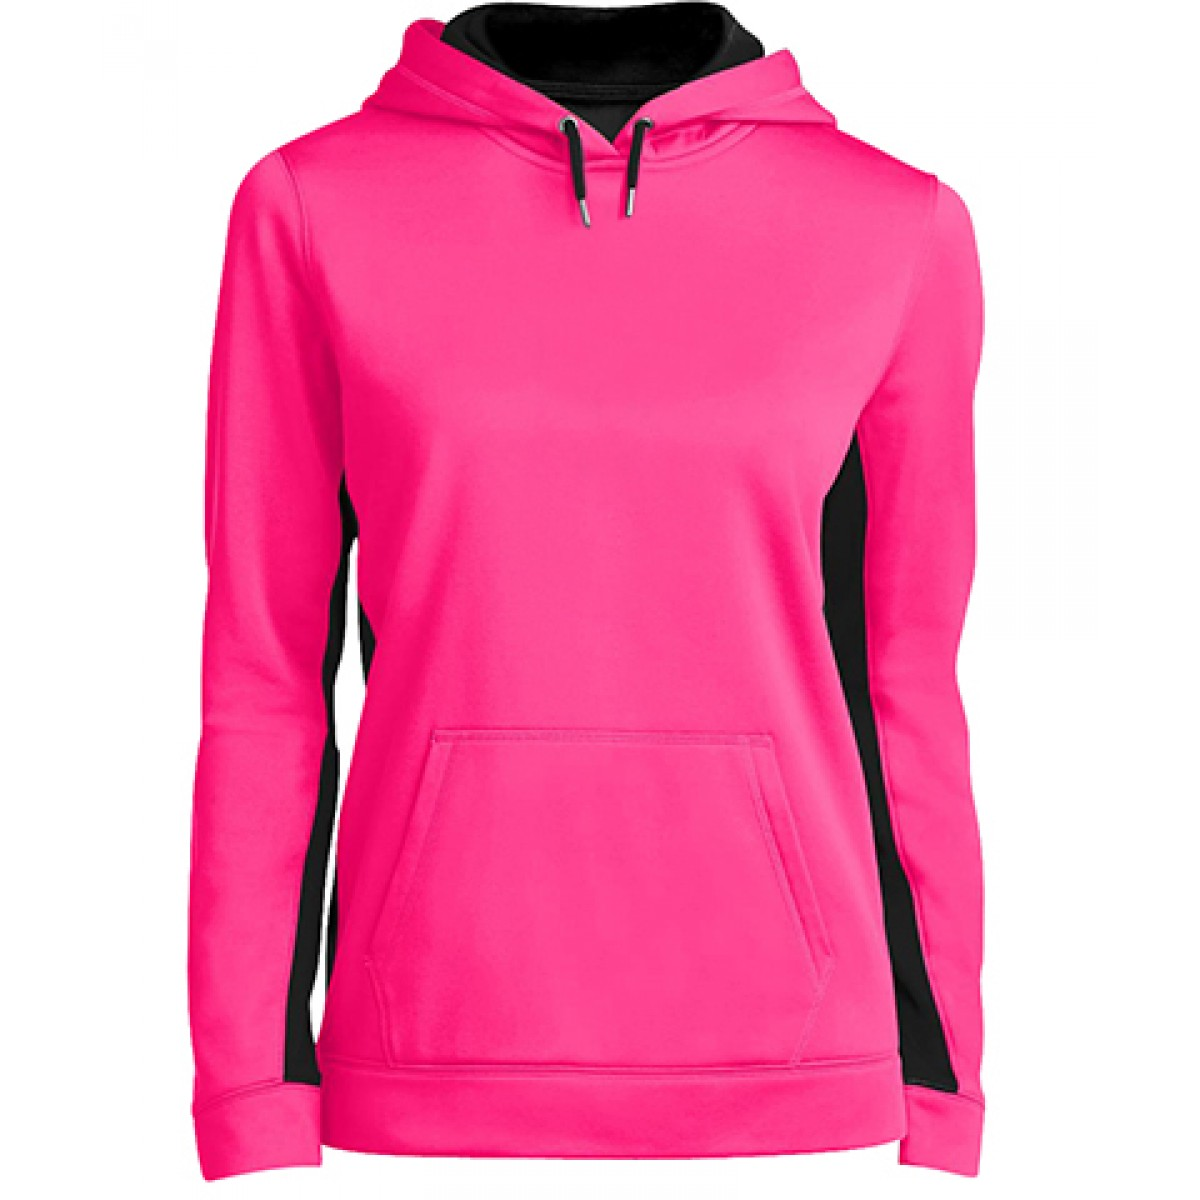 Ladies Colorblock Hooded Pullover-Neon Pink Black-L